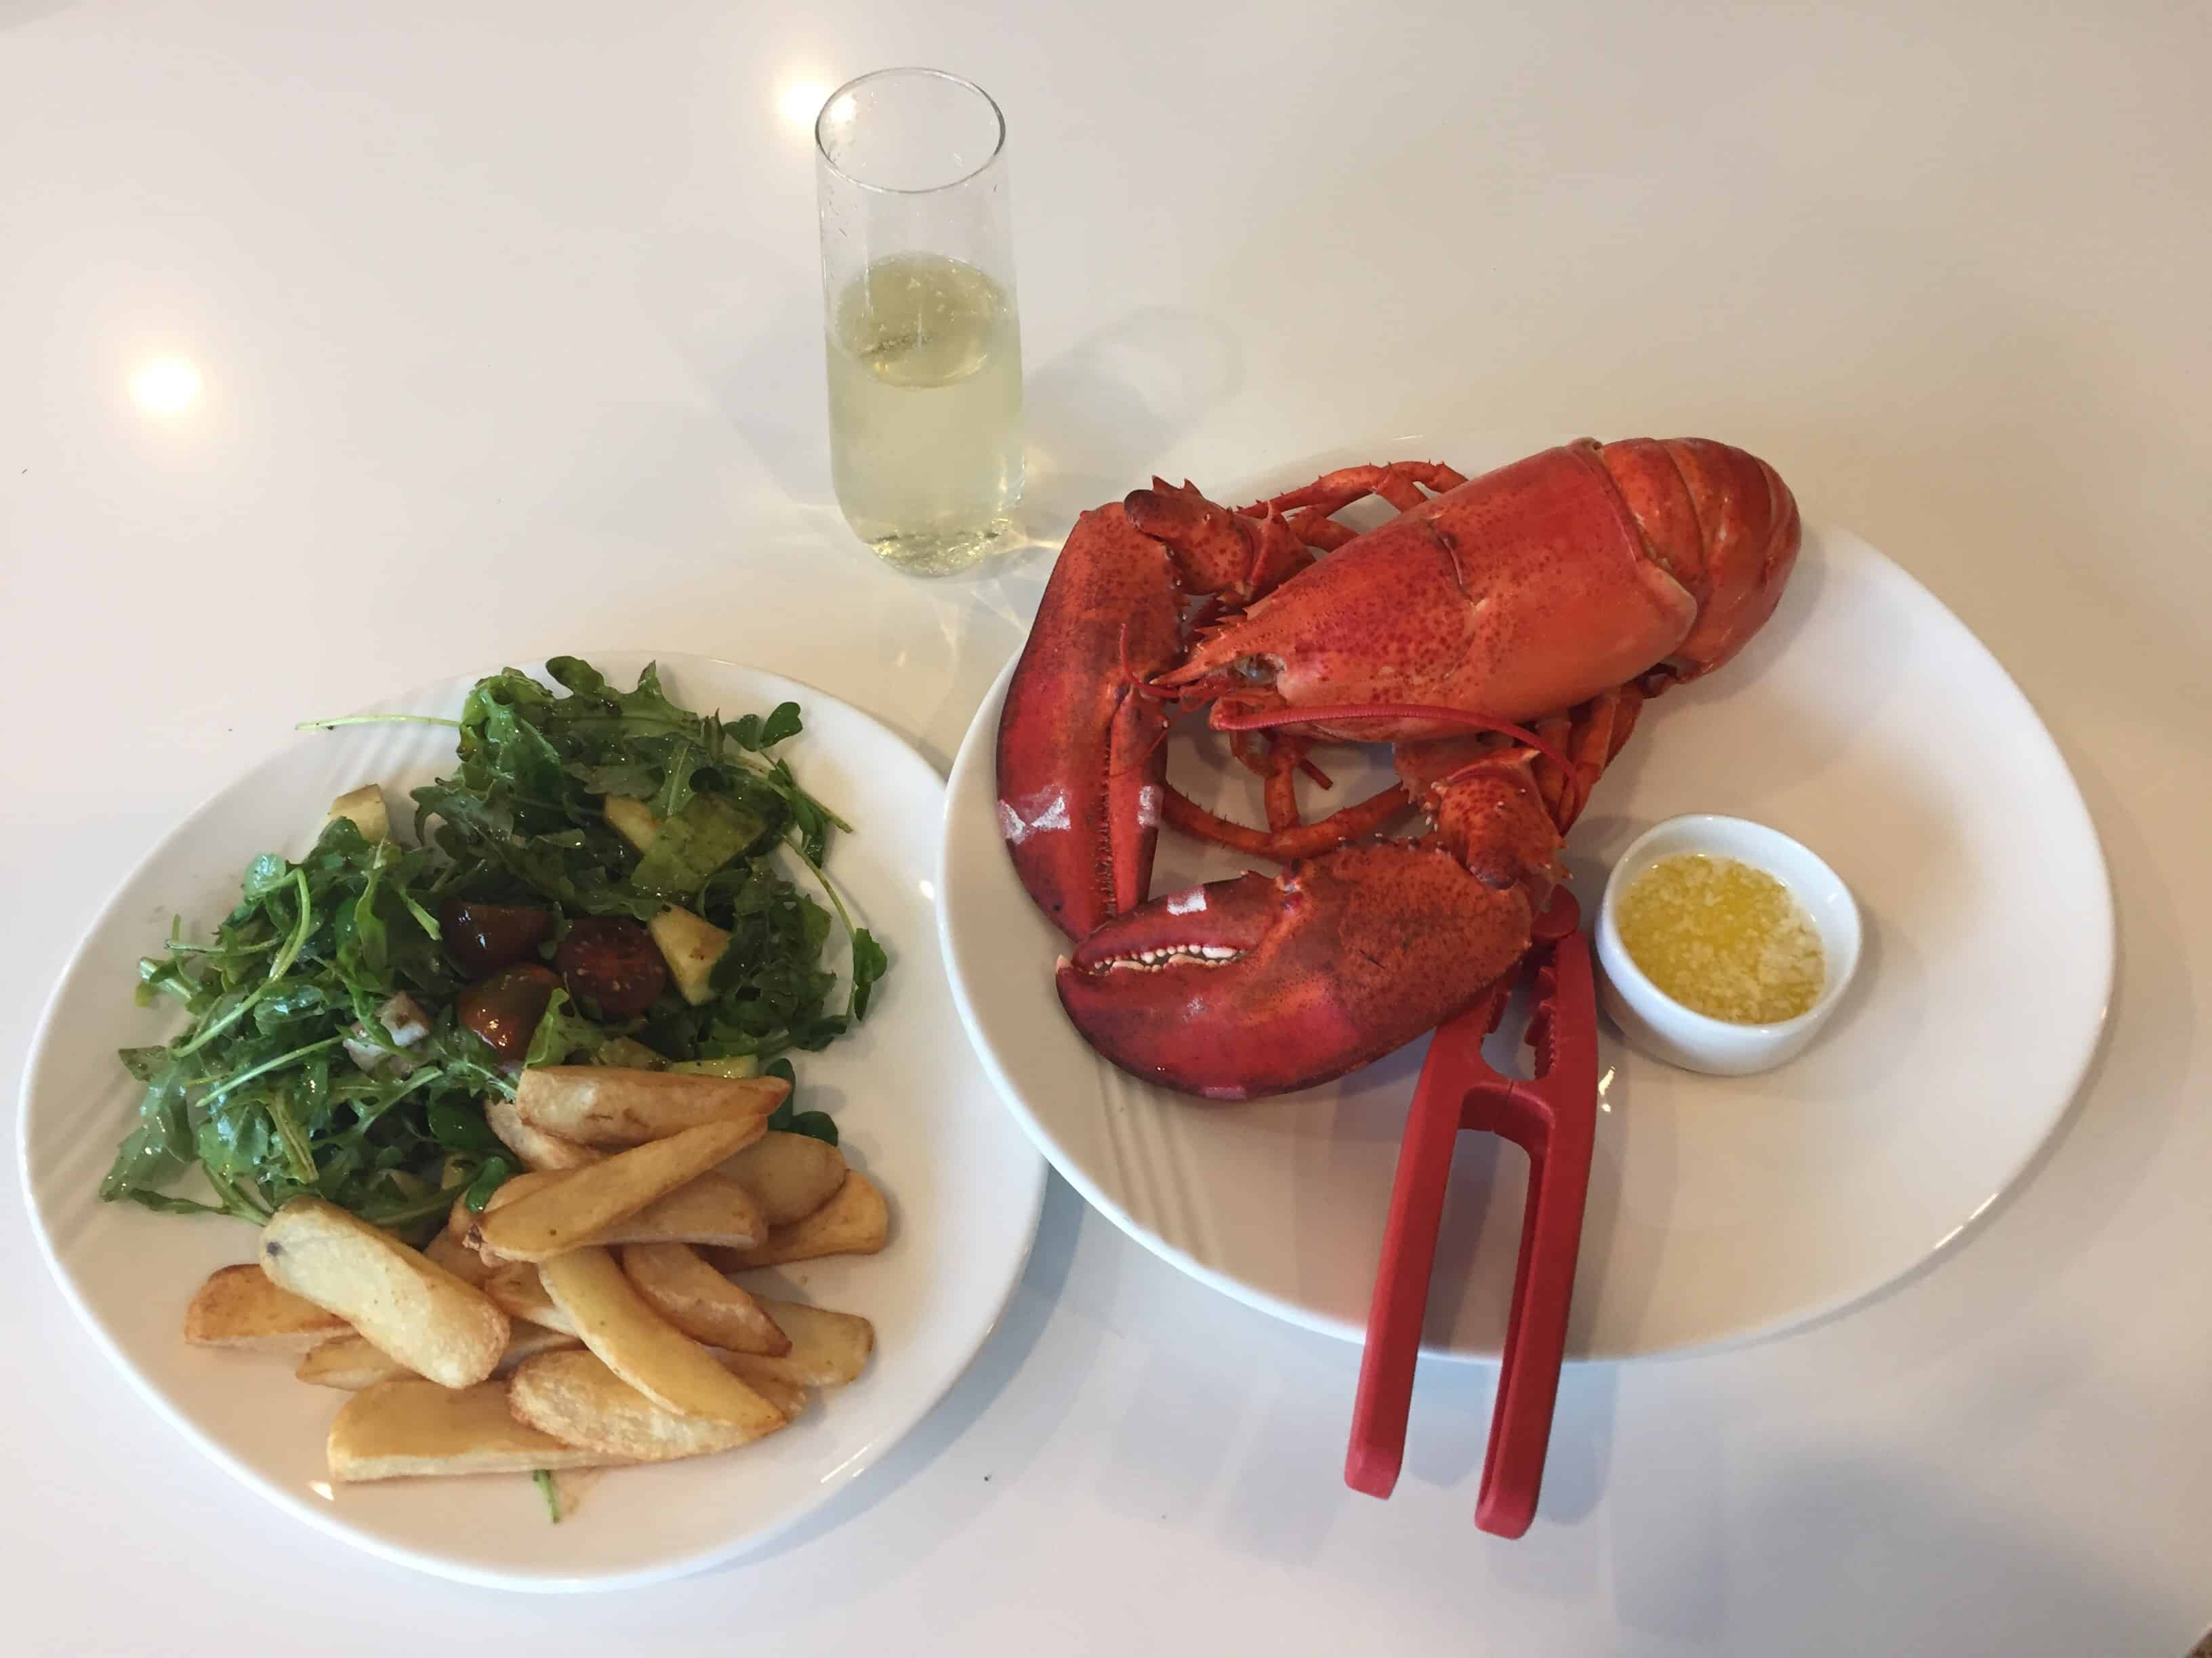 Photo of cooked lobster on a plate with french fries and a glass of wine.